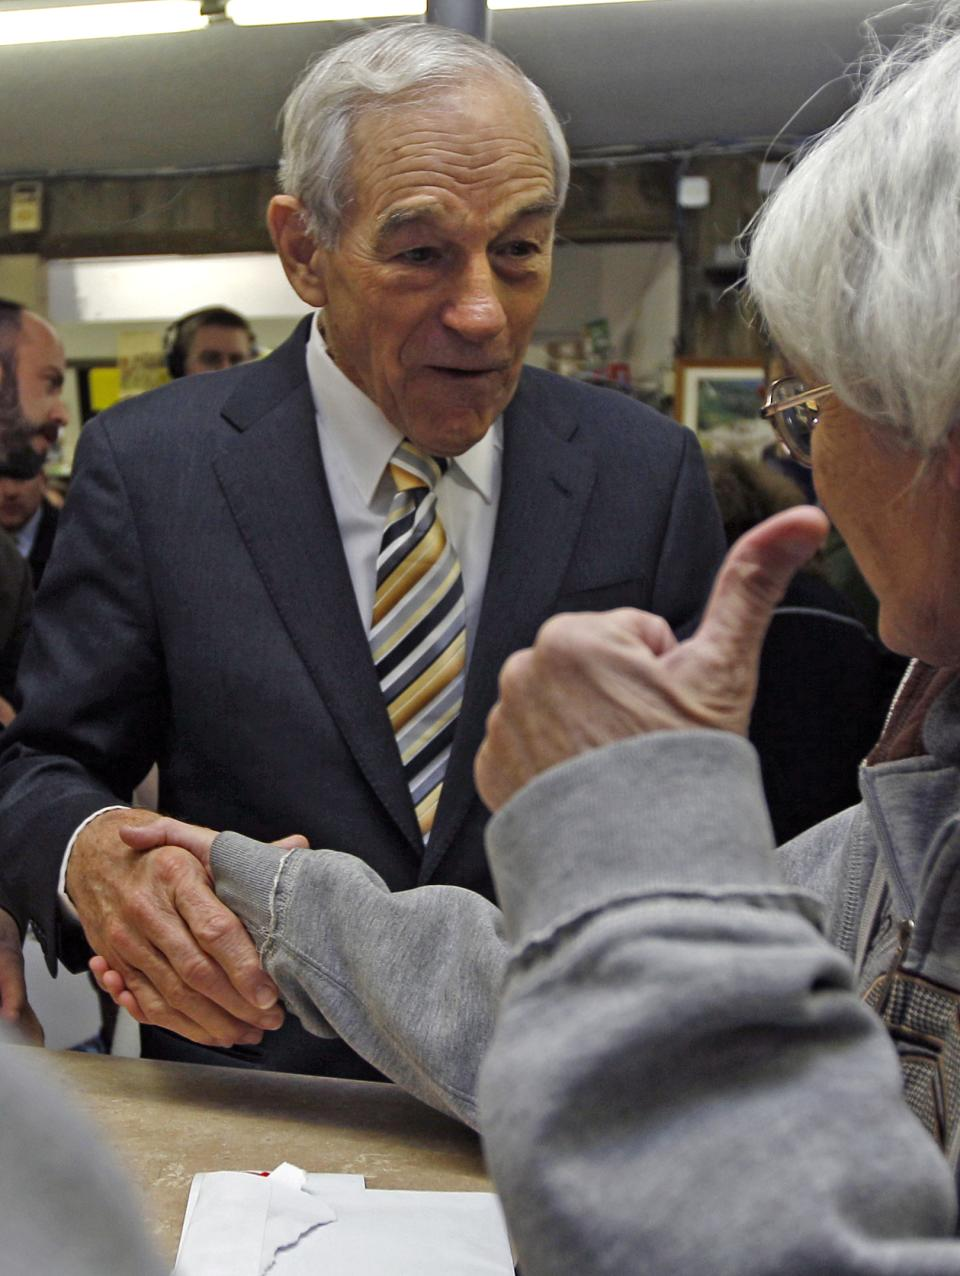 Republican presidential candidate Rep. Ron Paul, R-Texas, shakes hands while campaigning at Sandy's Variety Store in Manchester, N.H., Tuesday Dec. 20, 2011. (AP Photo/Charles Krupa)